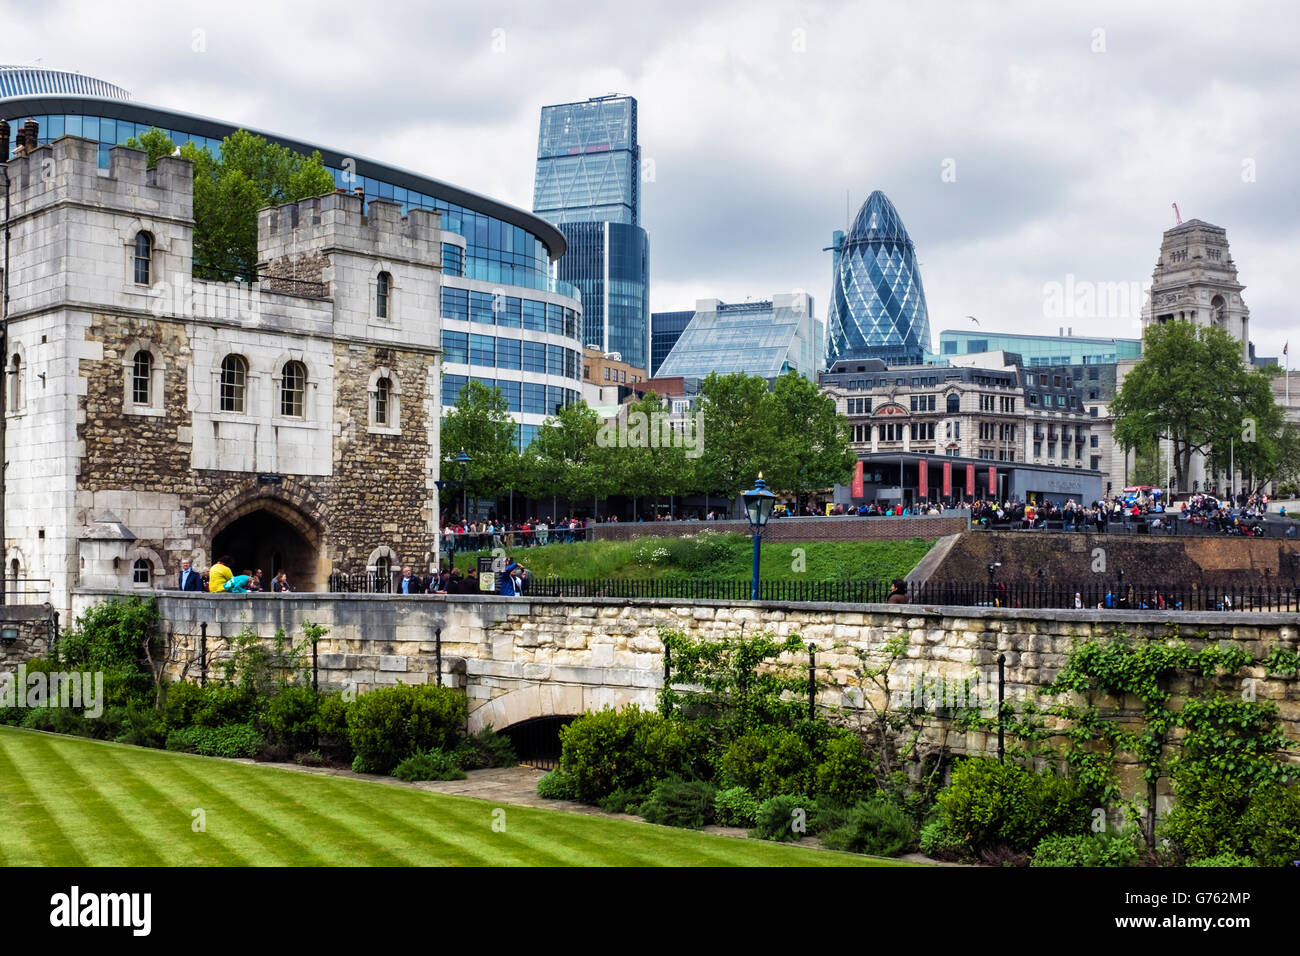 London Buildings, old and new, Historic Tower of London building and new apartment blocks and skyscrapers - Stock Image